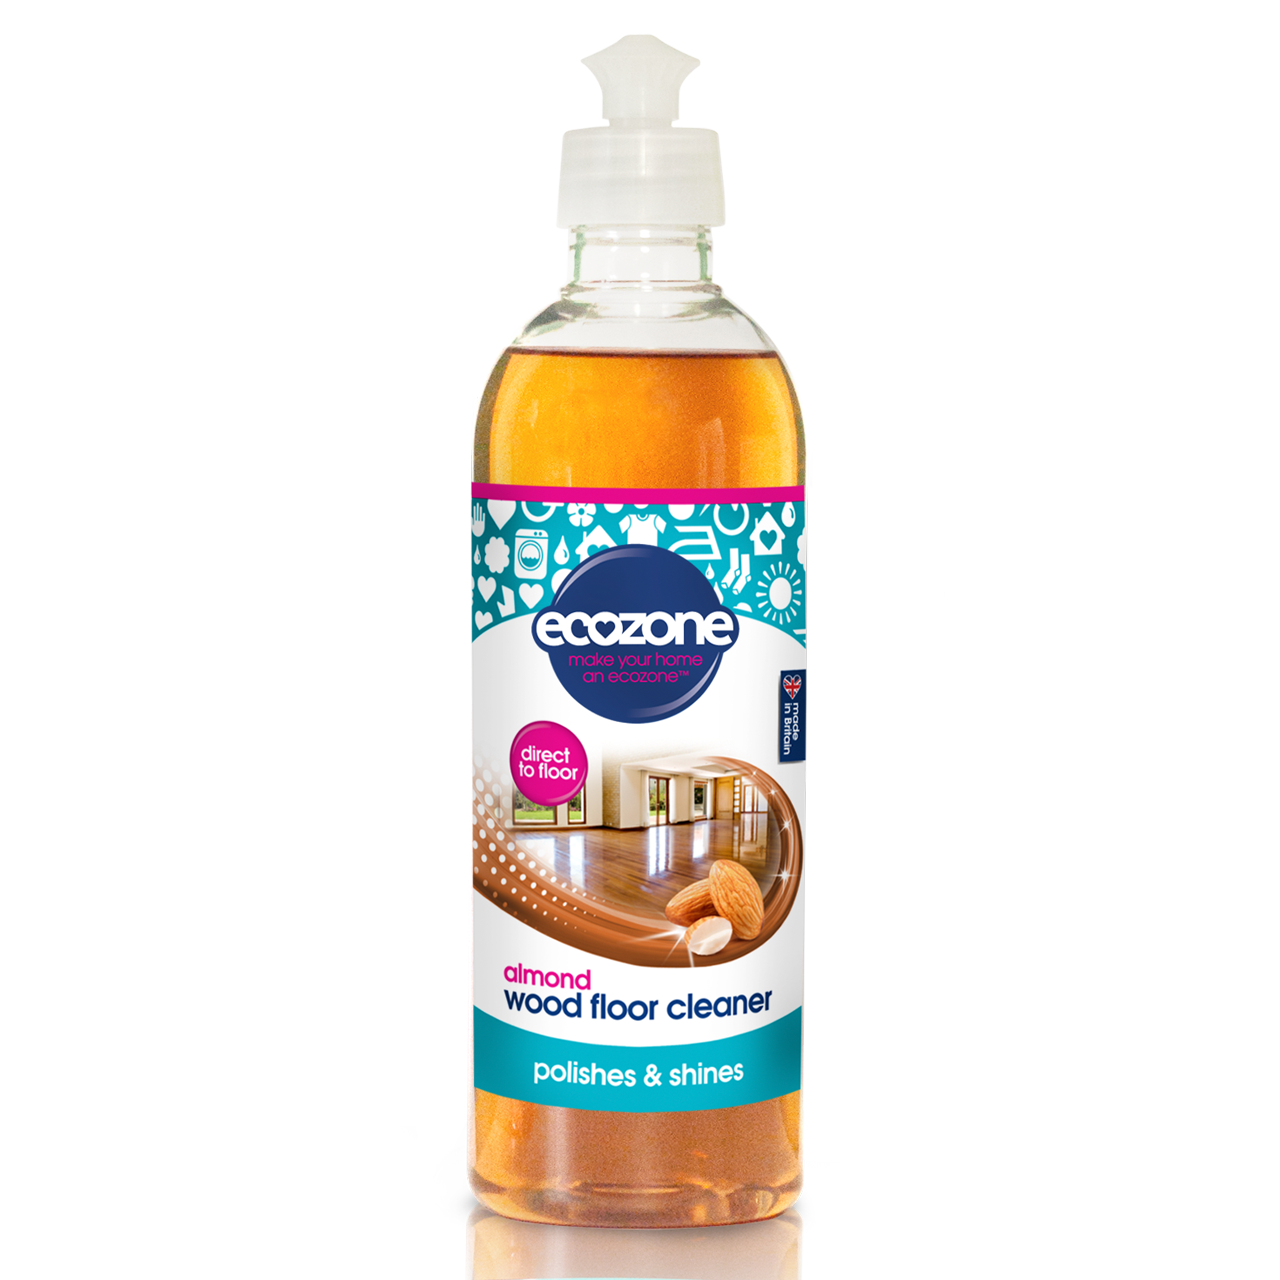 Ecozone Almond Wood Floor Cleaner 500 ml, Squirt & Mop